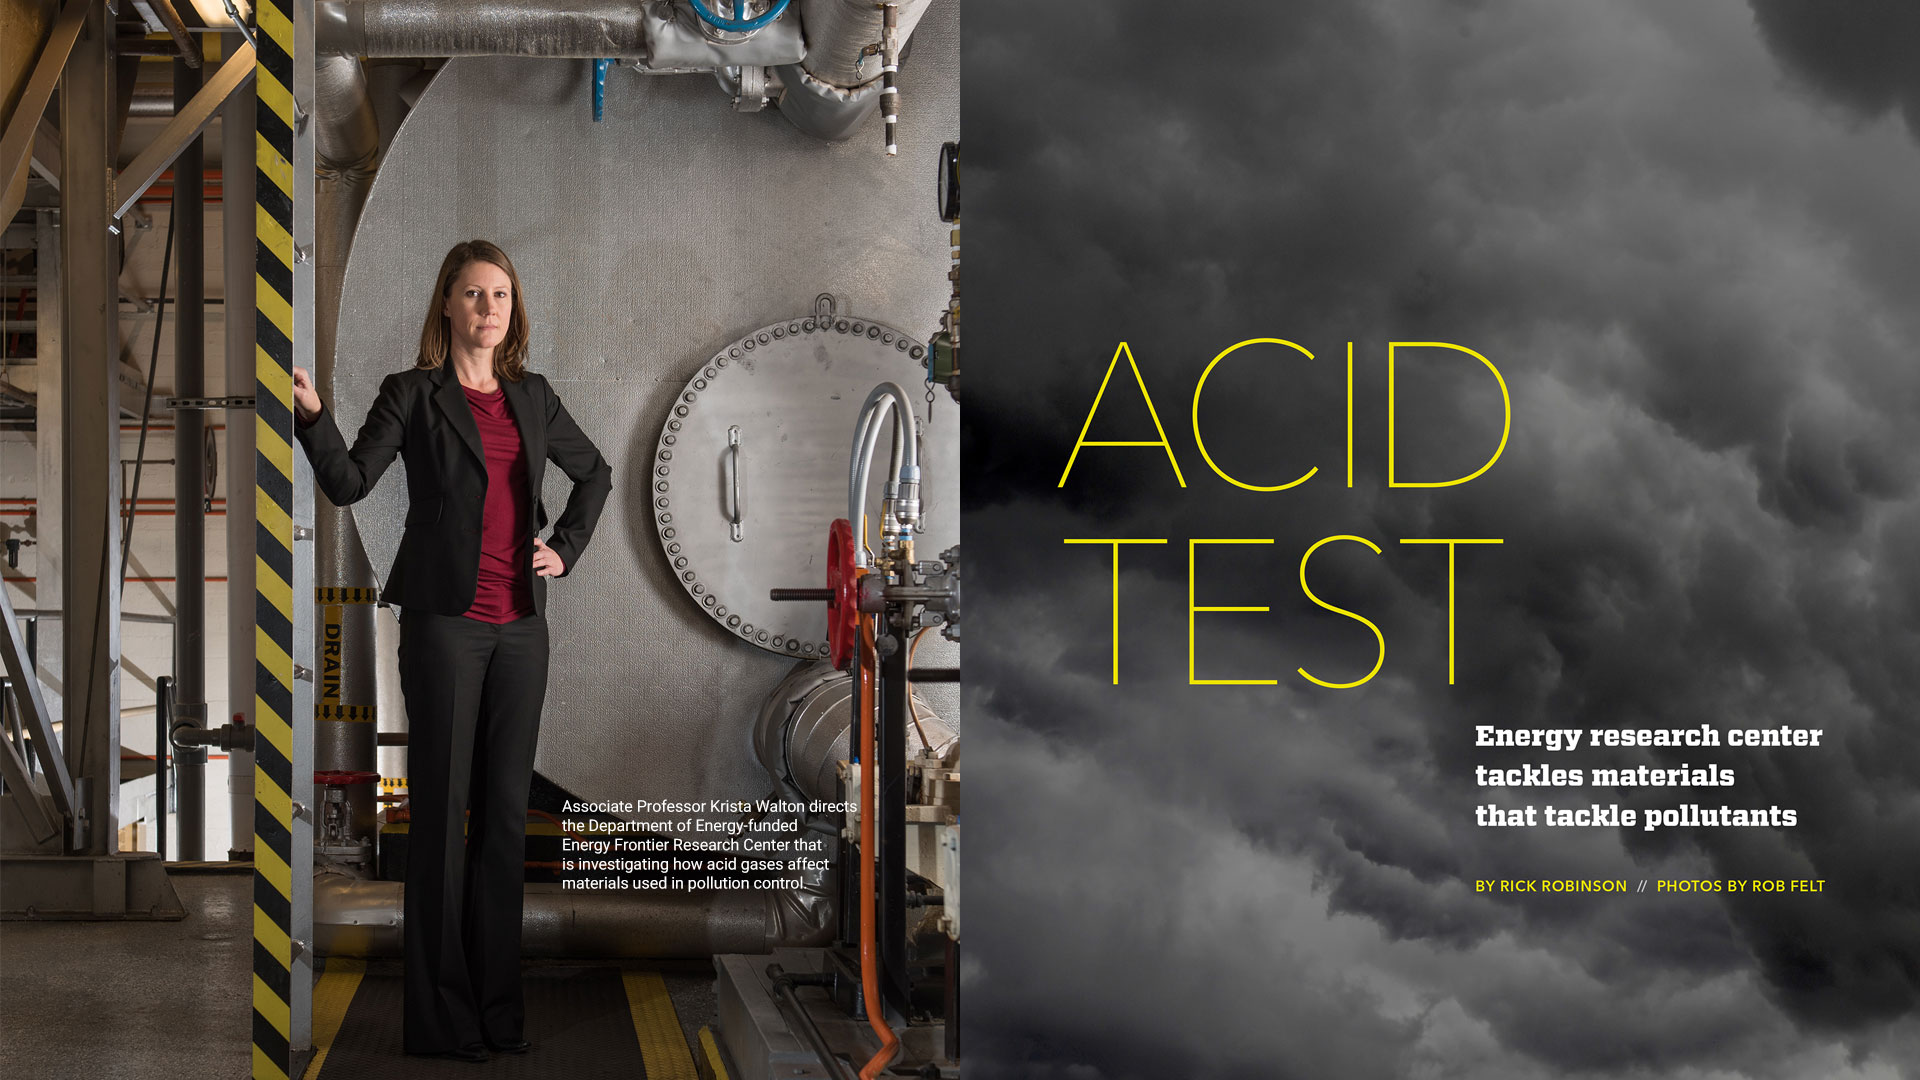 Associate Professor Krista Walton directs the Department of Energy-funded Energy Frontier Research Center that is investigating how acid gases affect materials used in pollution control.